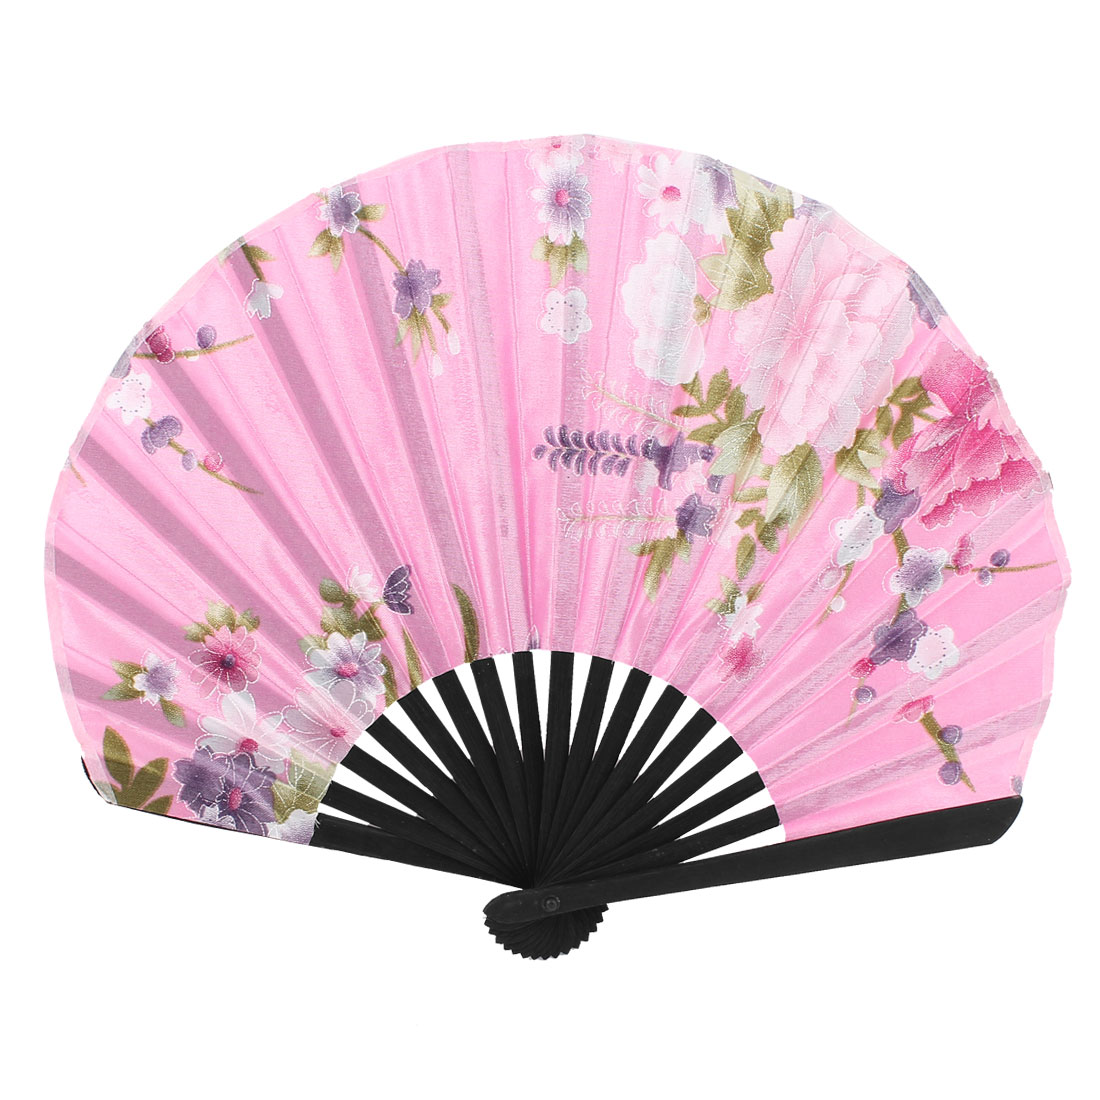 Floral Printing Lady Japanese Stylish Folding Hand Fan Party Gift Pink